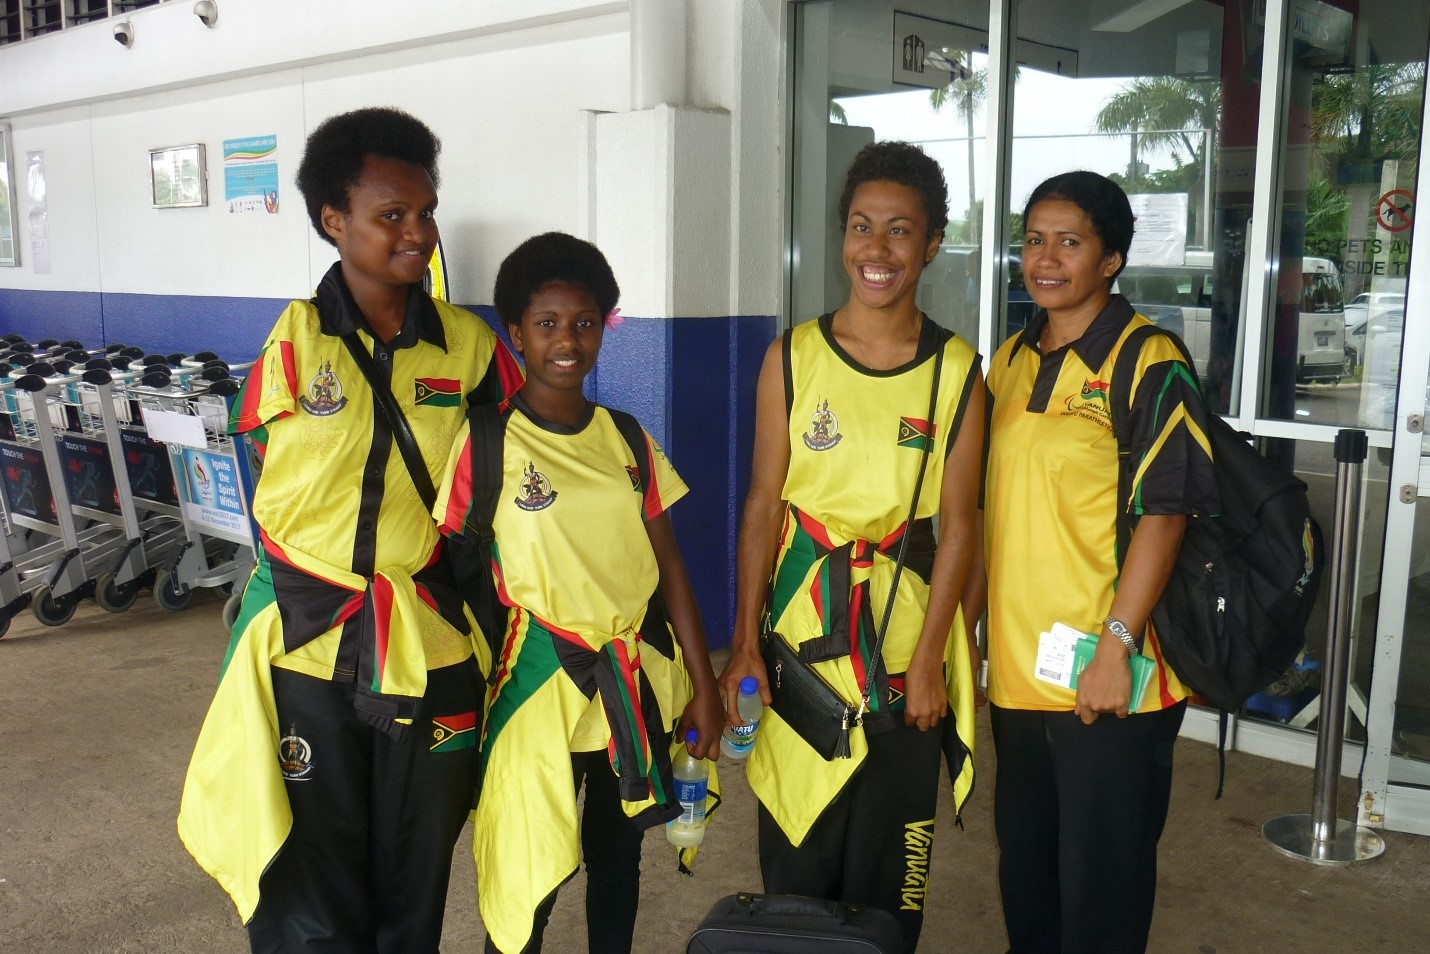 Vanuatu Parathletes in Commonwealth Games Training Camp - With the Commonwealth Games in Australia only a few months away, Vanuatu's Parathletics Team has departed for a pre-Games training camp in Brisbane. Dephnny Naliupis, Marceline Moli and Friana Kweivera are accompanied by Chef d'Equip Dorian Naliupis for the three day intensive technical training to improve their skills and fitness...